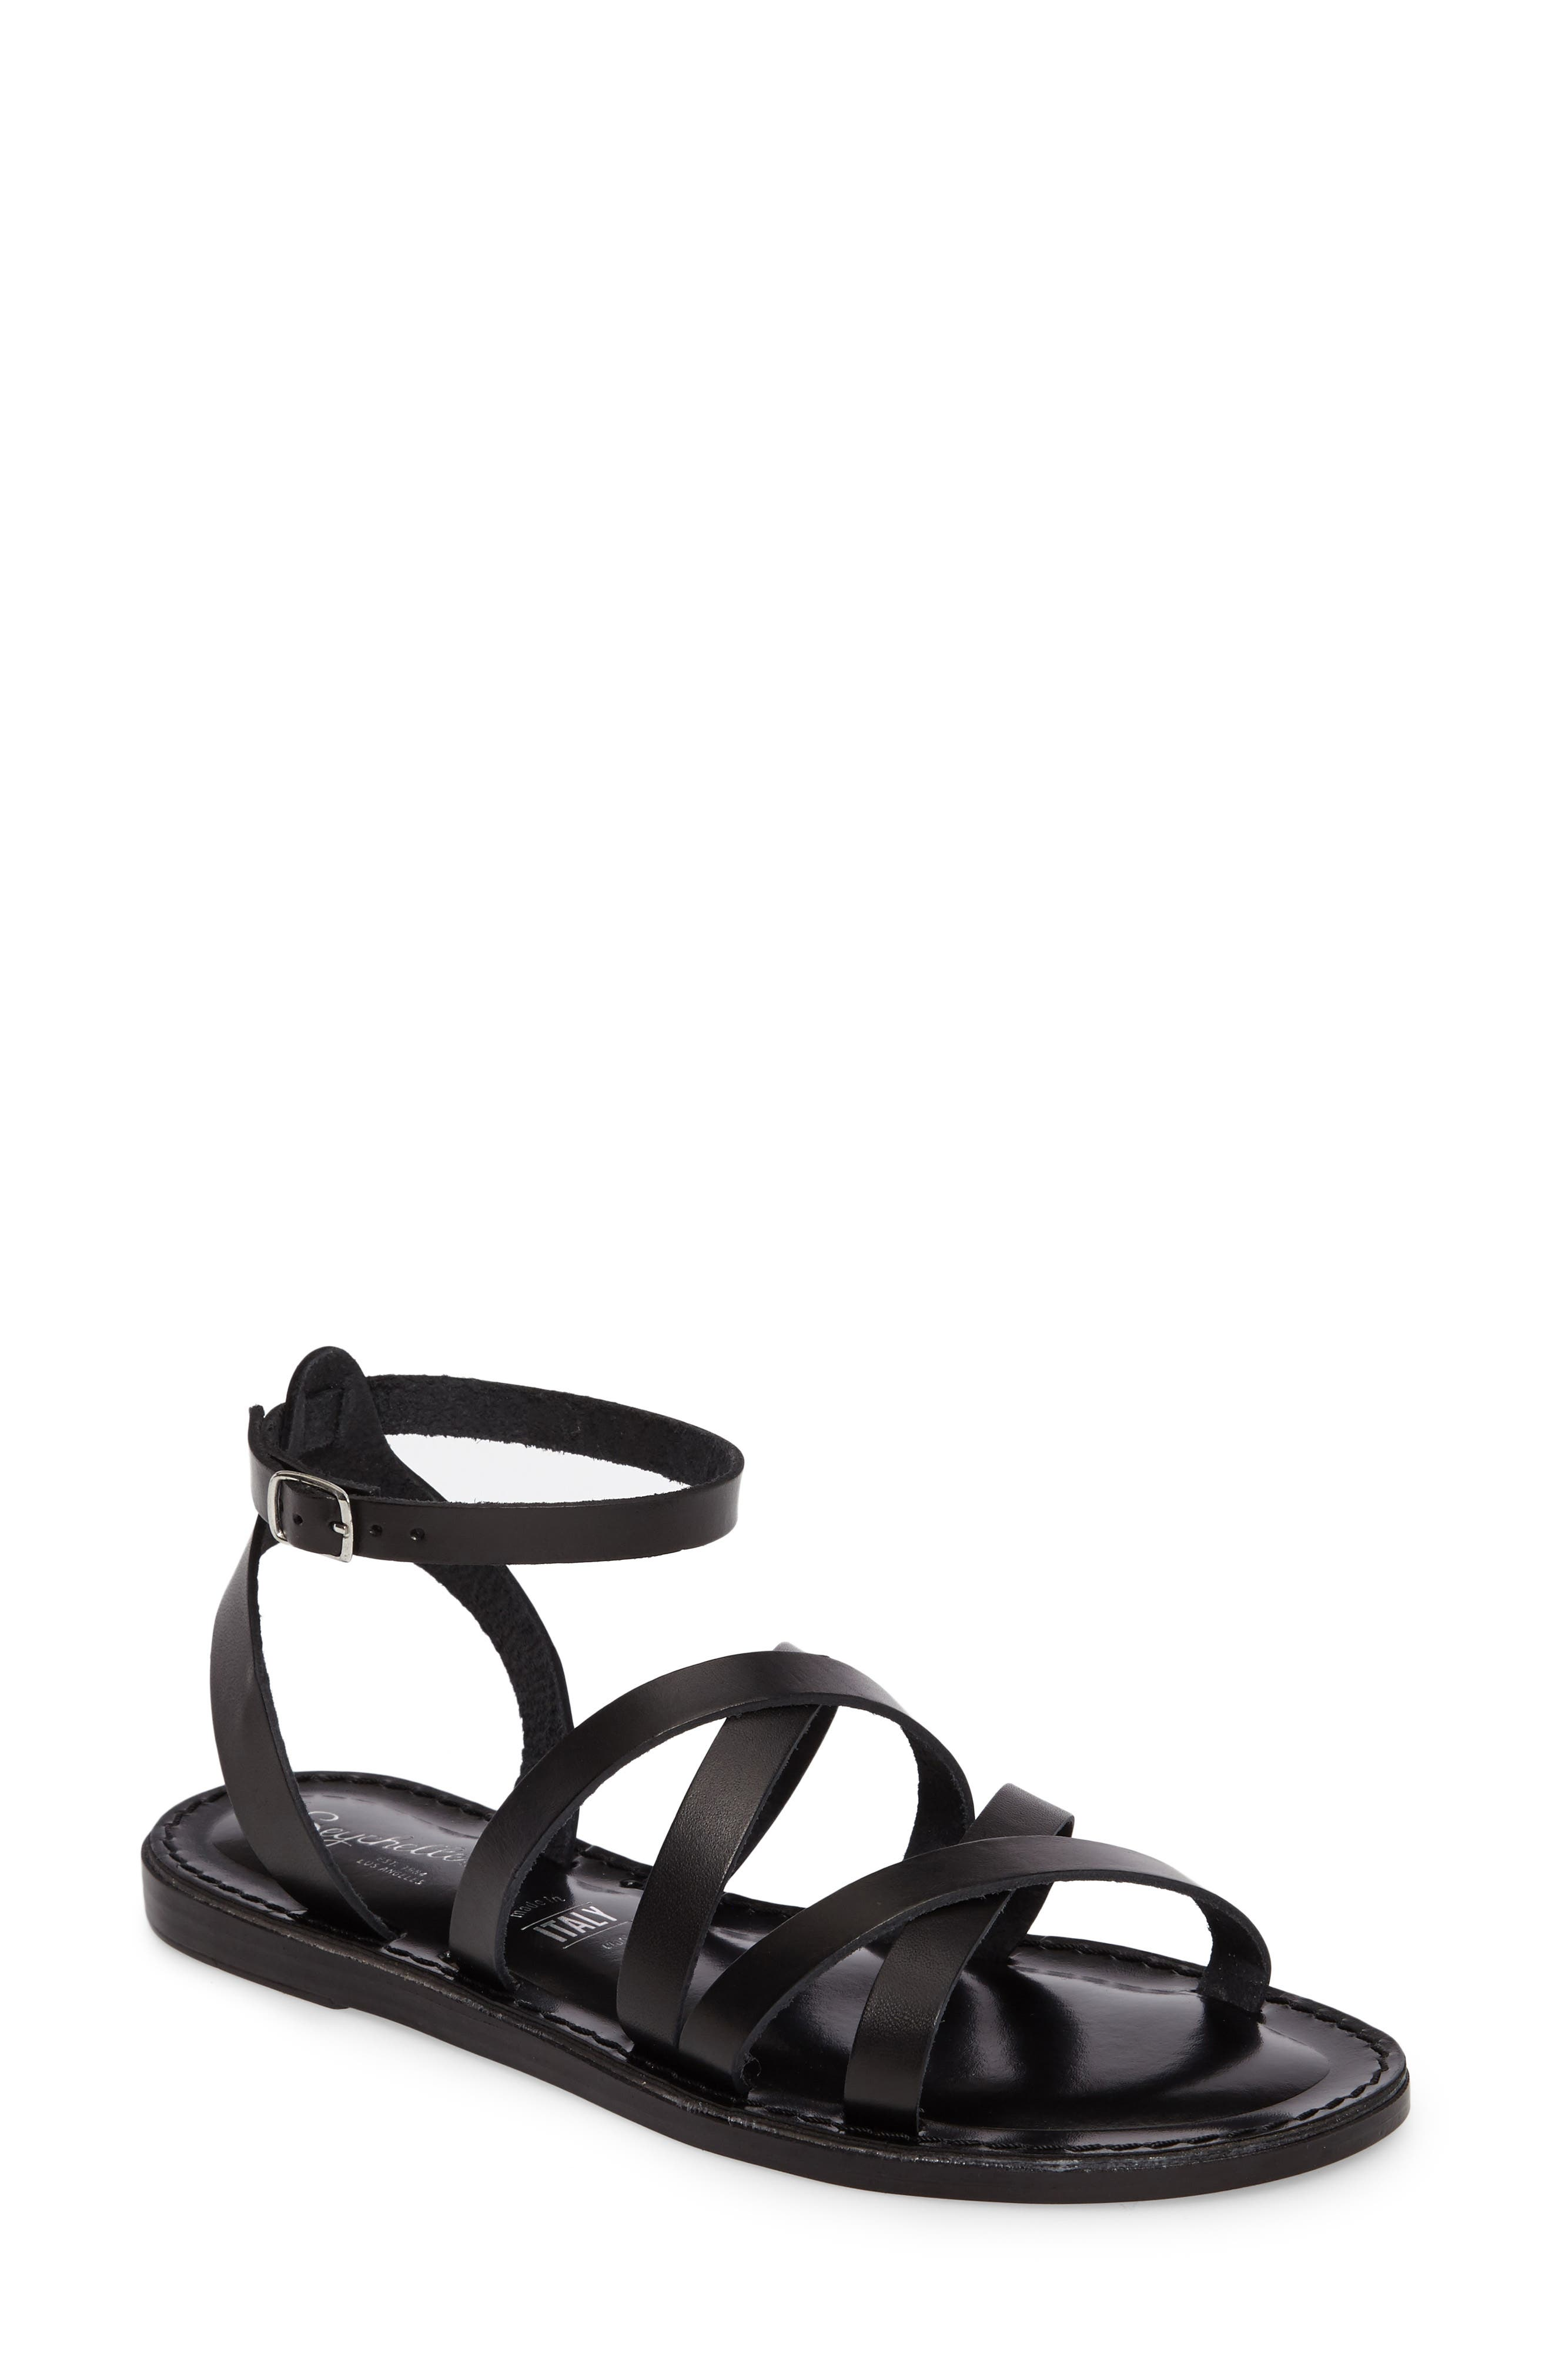 Main Image - Seychelles In the Shadows Sandal (Women)